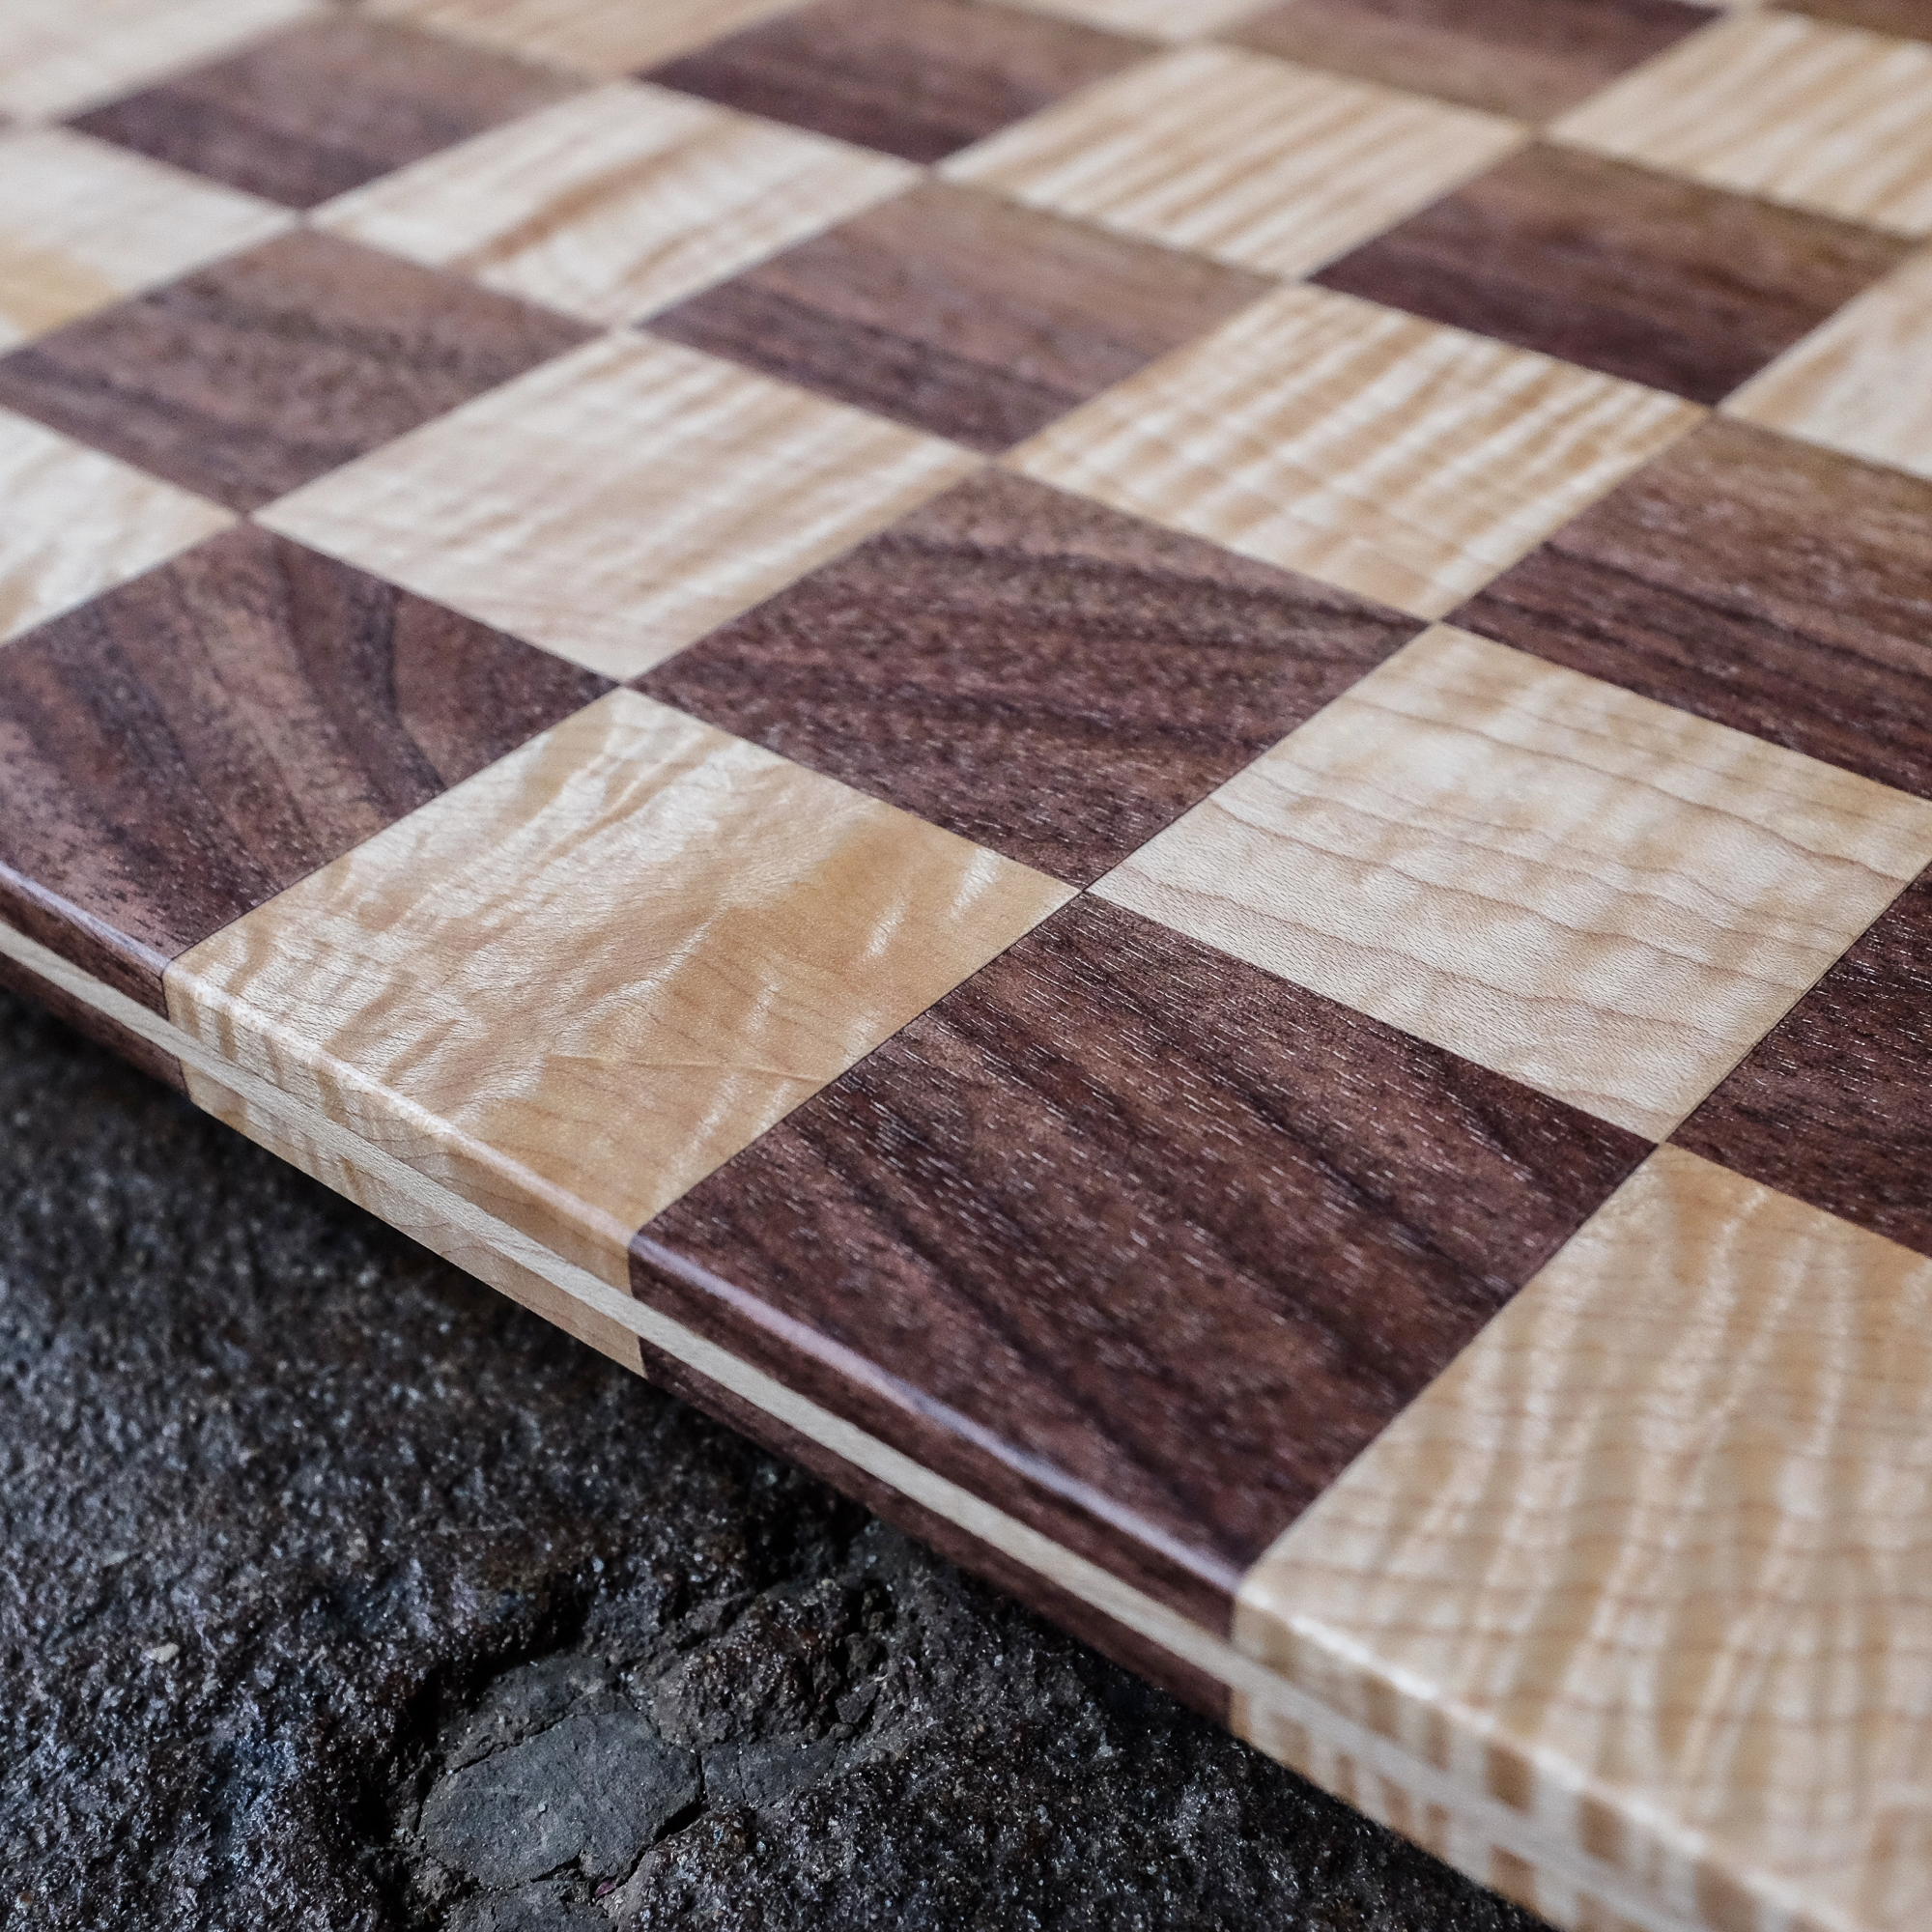 Chessboards - Solid hardwood chessboards of various styles, designed and built by an appreciator of the game.